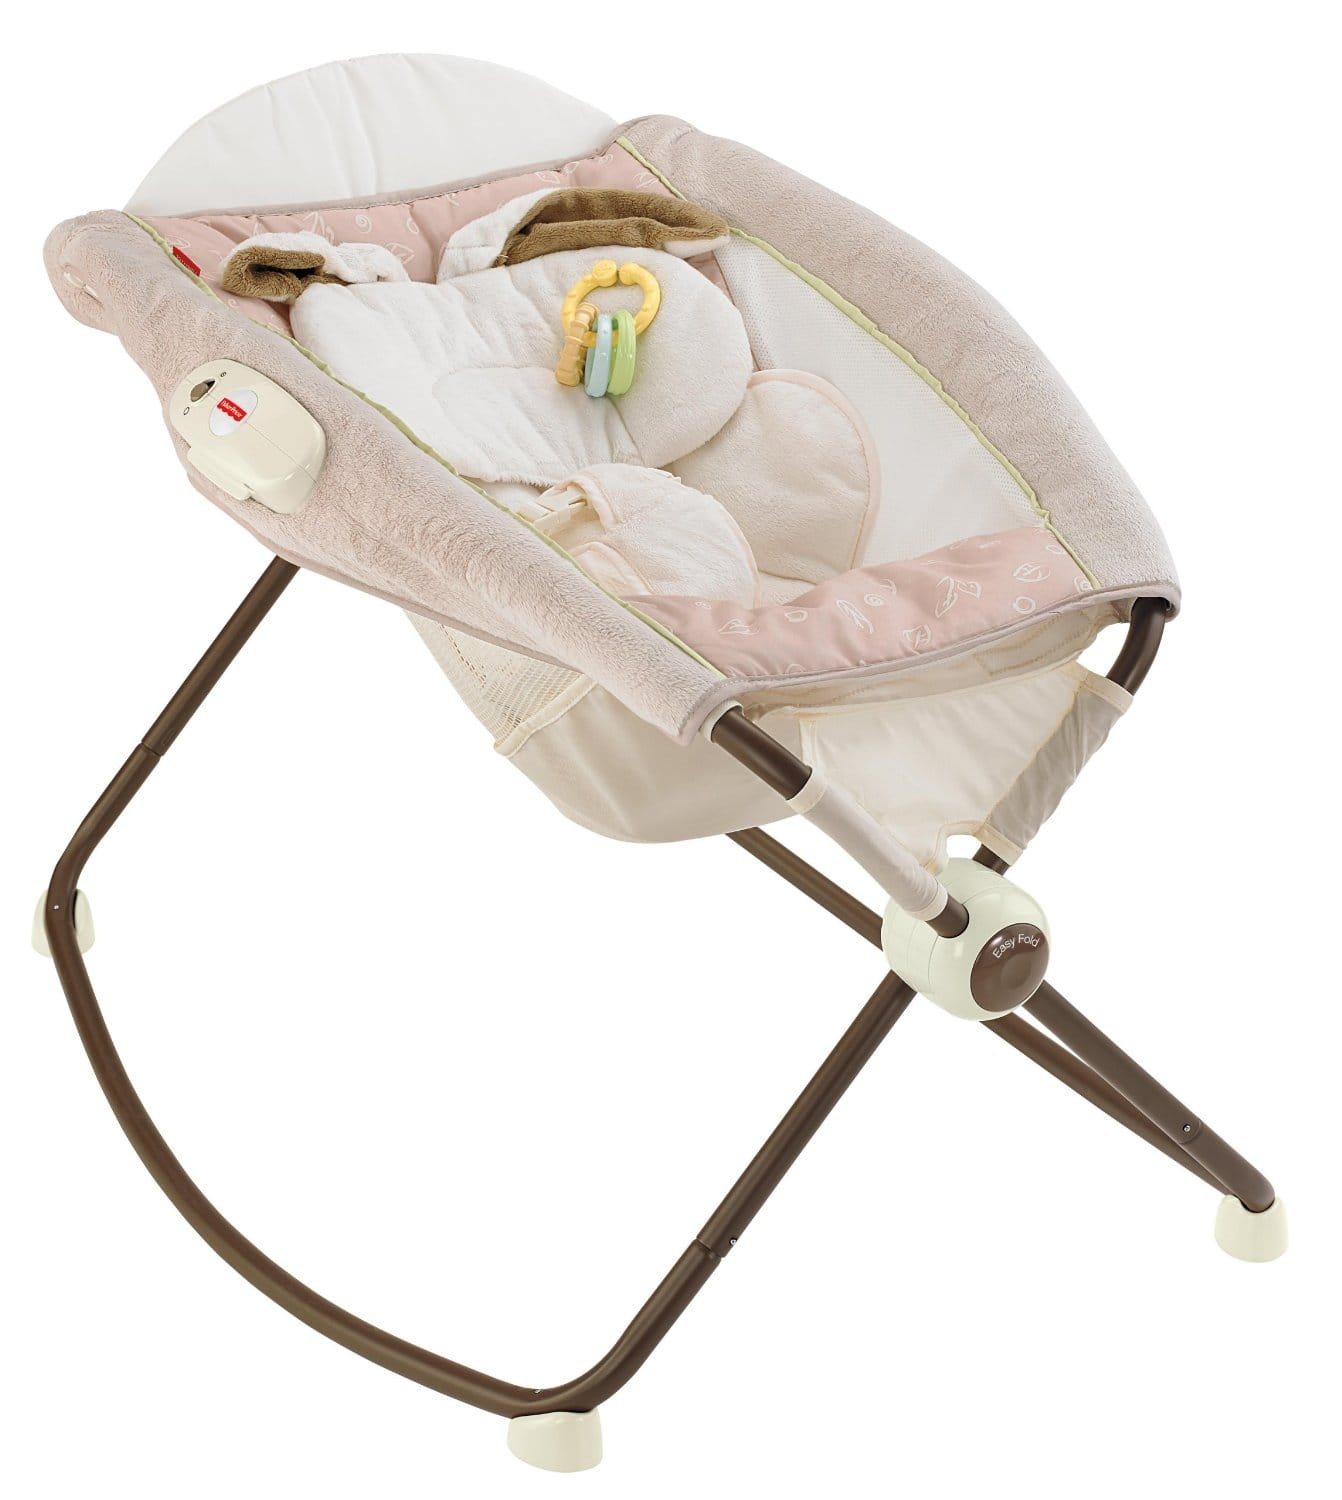 Amazon Prime: Fisher-Price My Little Snugabunny Deluxe Newborn Rock 'n Play Sleeper $38.99